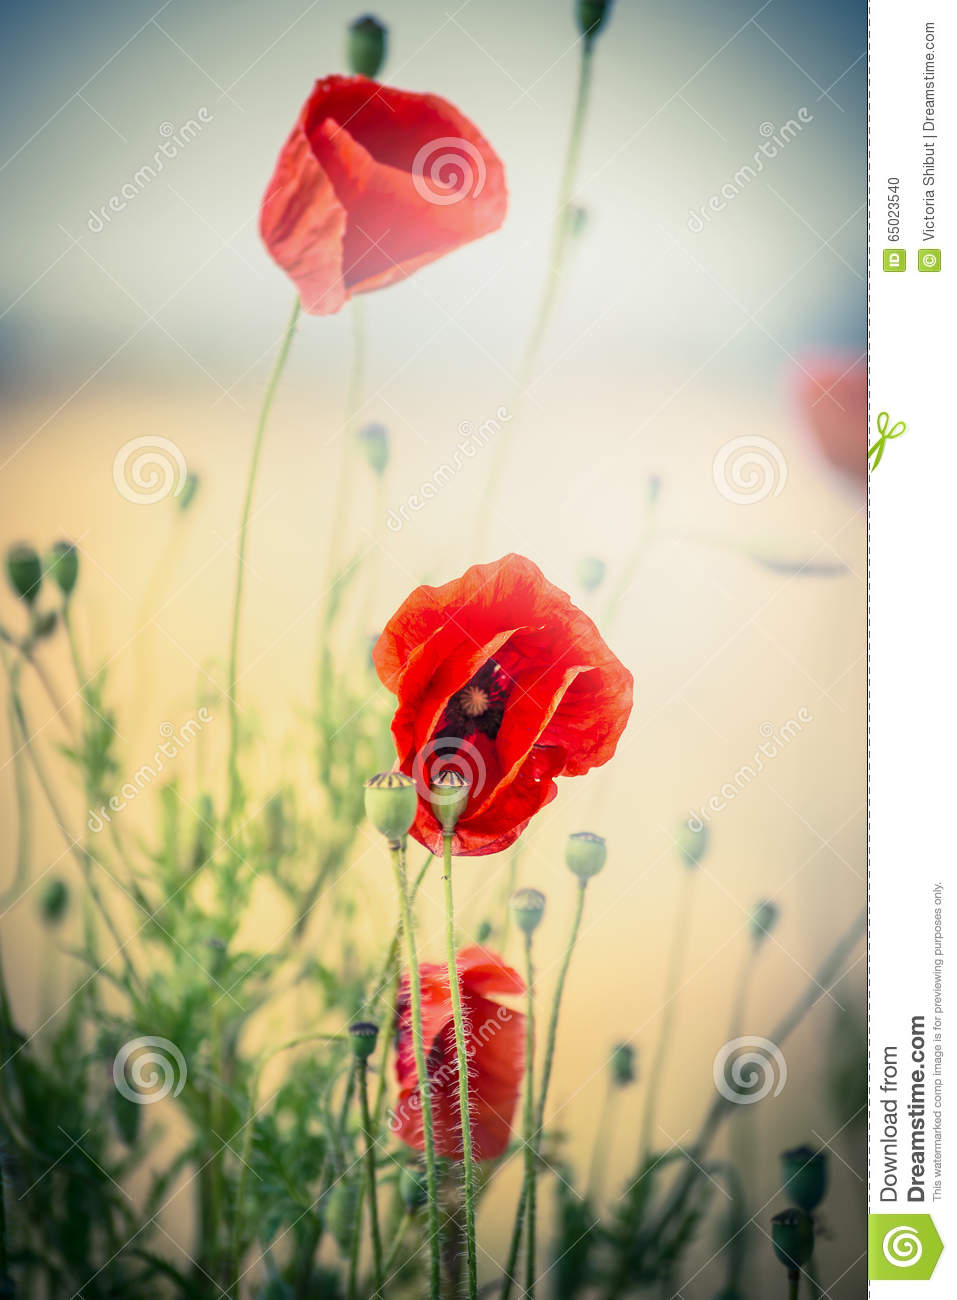 Red Poppies Flowers On Blurred Nature Background Stock Photo Image